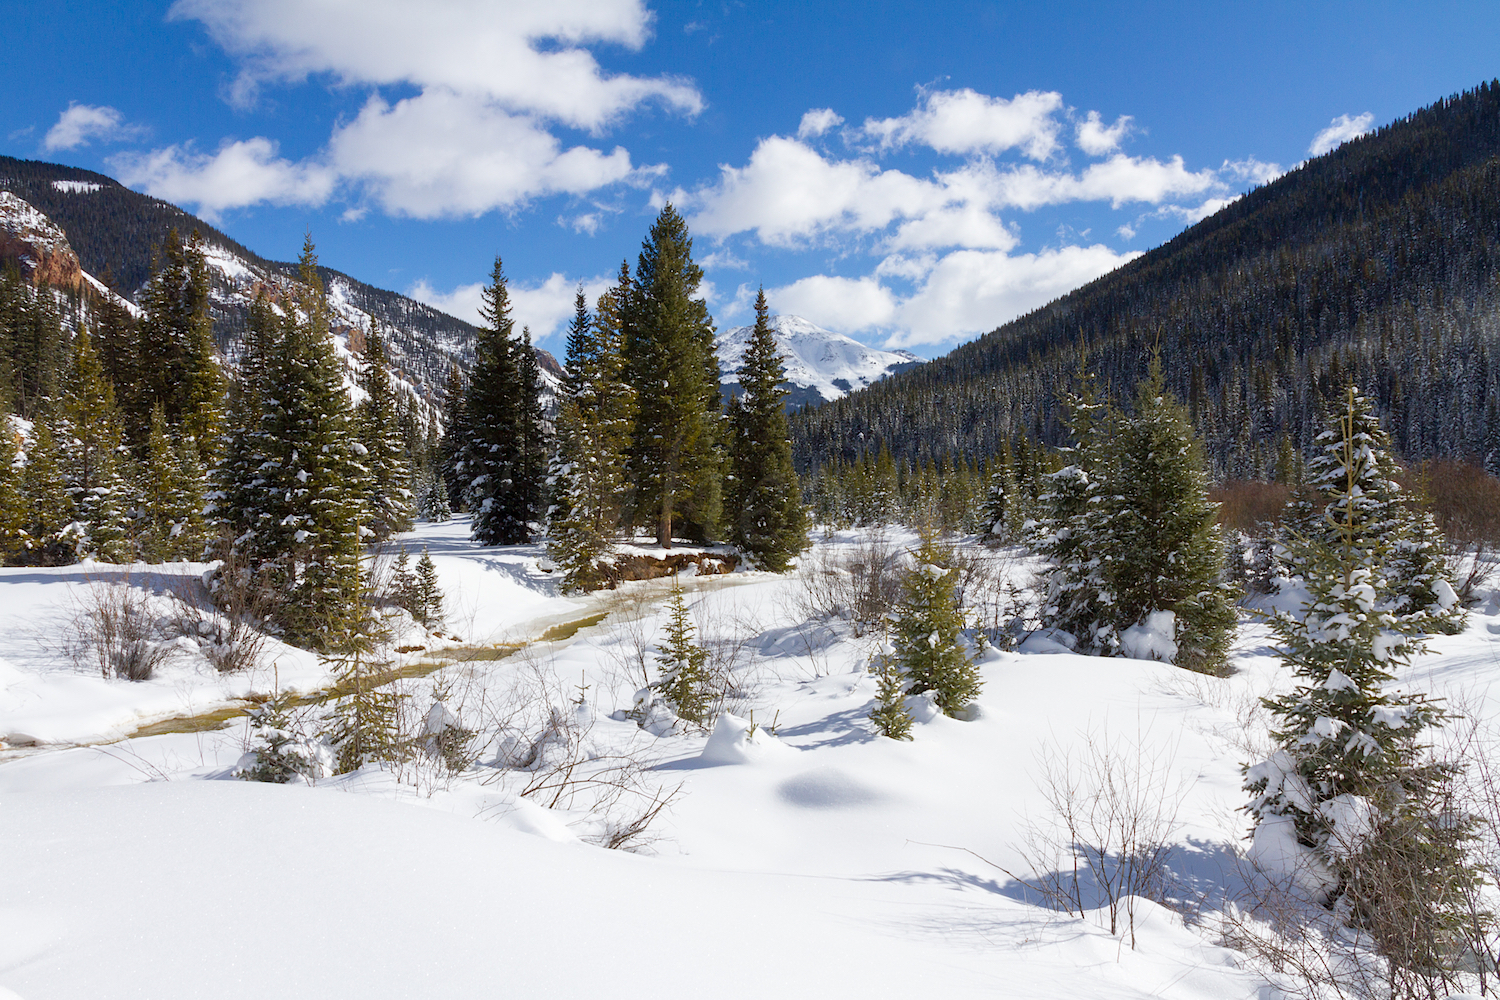 South Mineral Snowshoe, Image # 2744